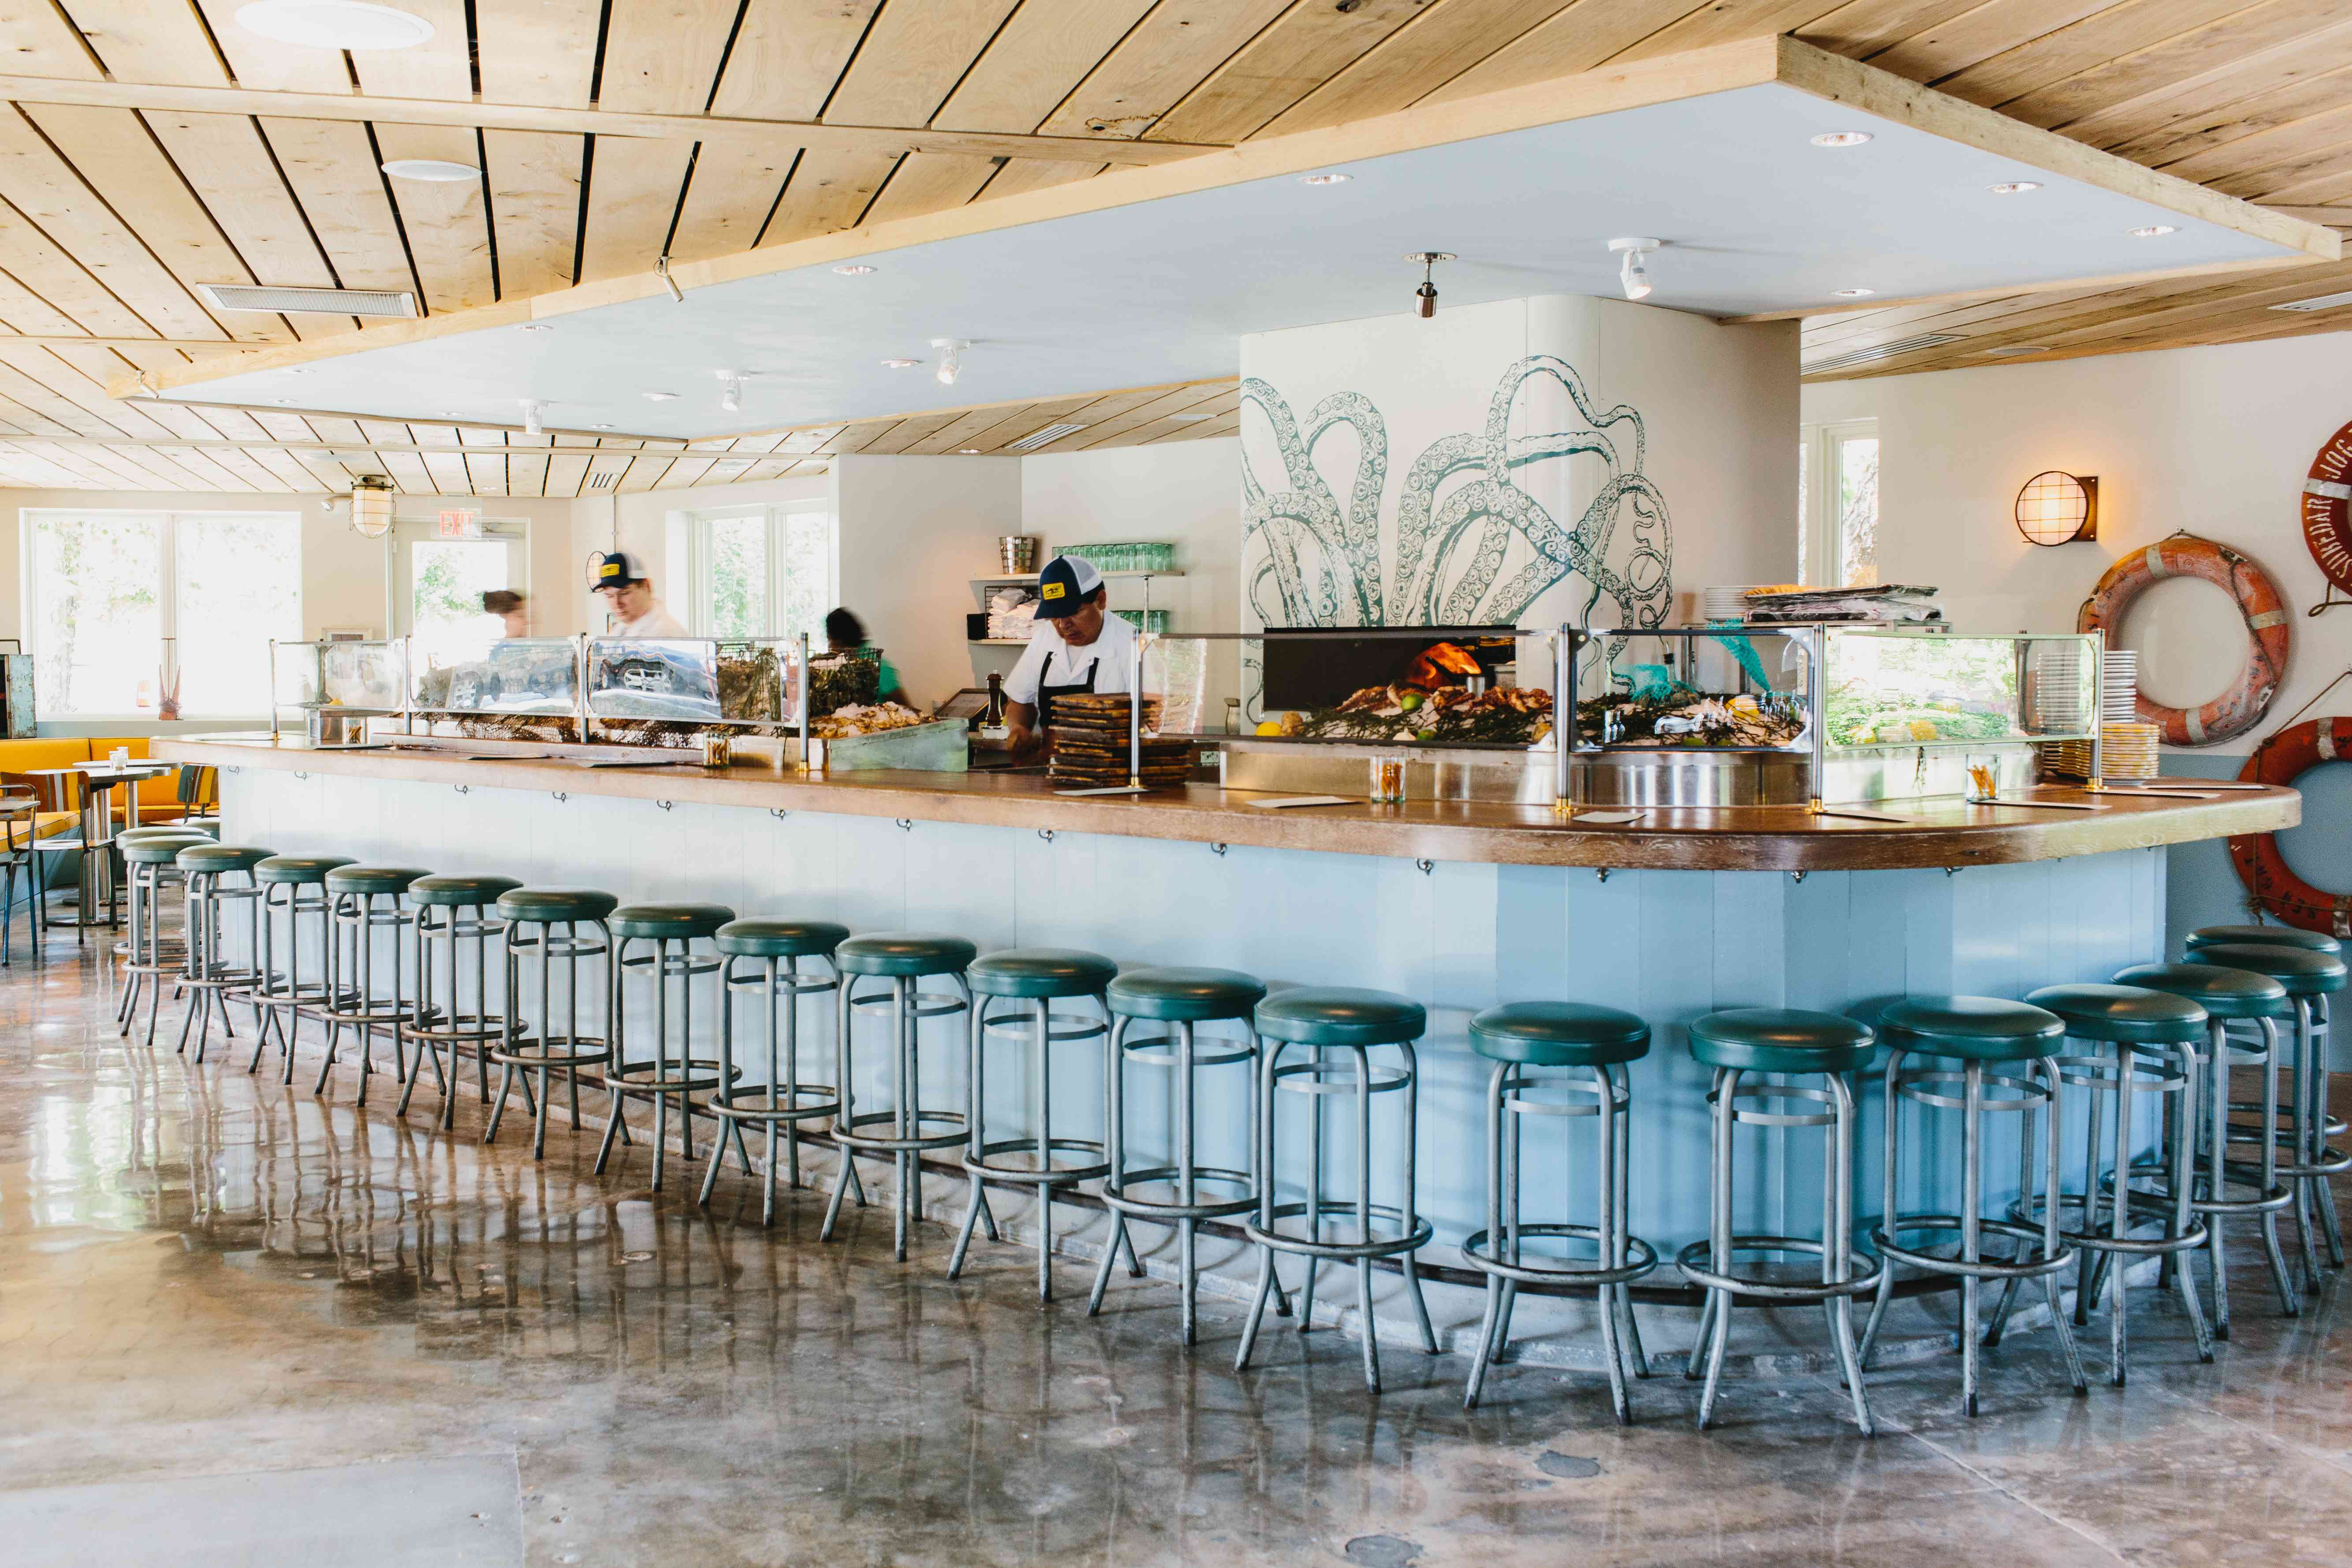 metal-legged stools with teal seat lined up around a long bar with three people behind it